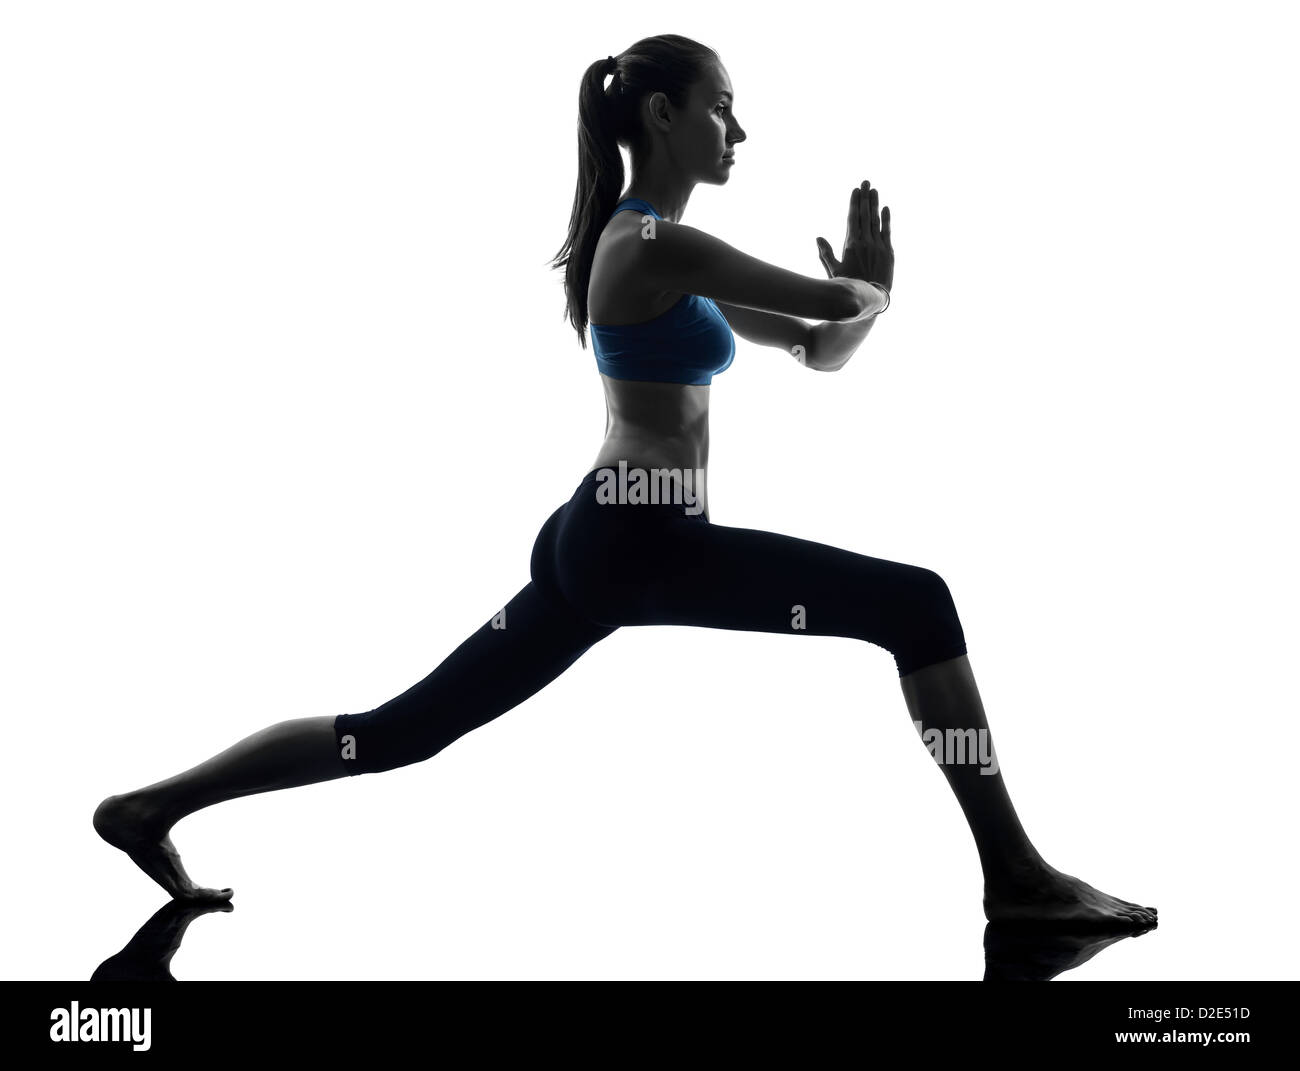 one  woman exercising yoga warrior position in silhouette studio isolated on white background - Stock Image